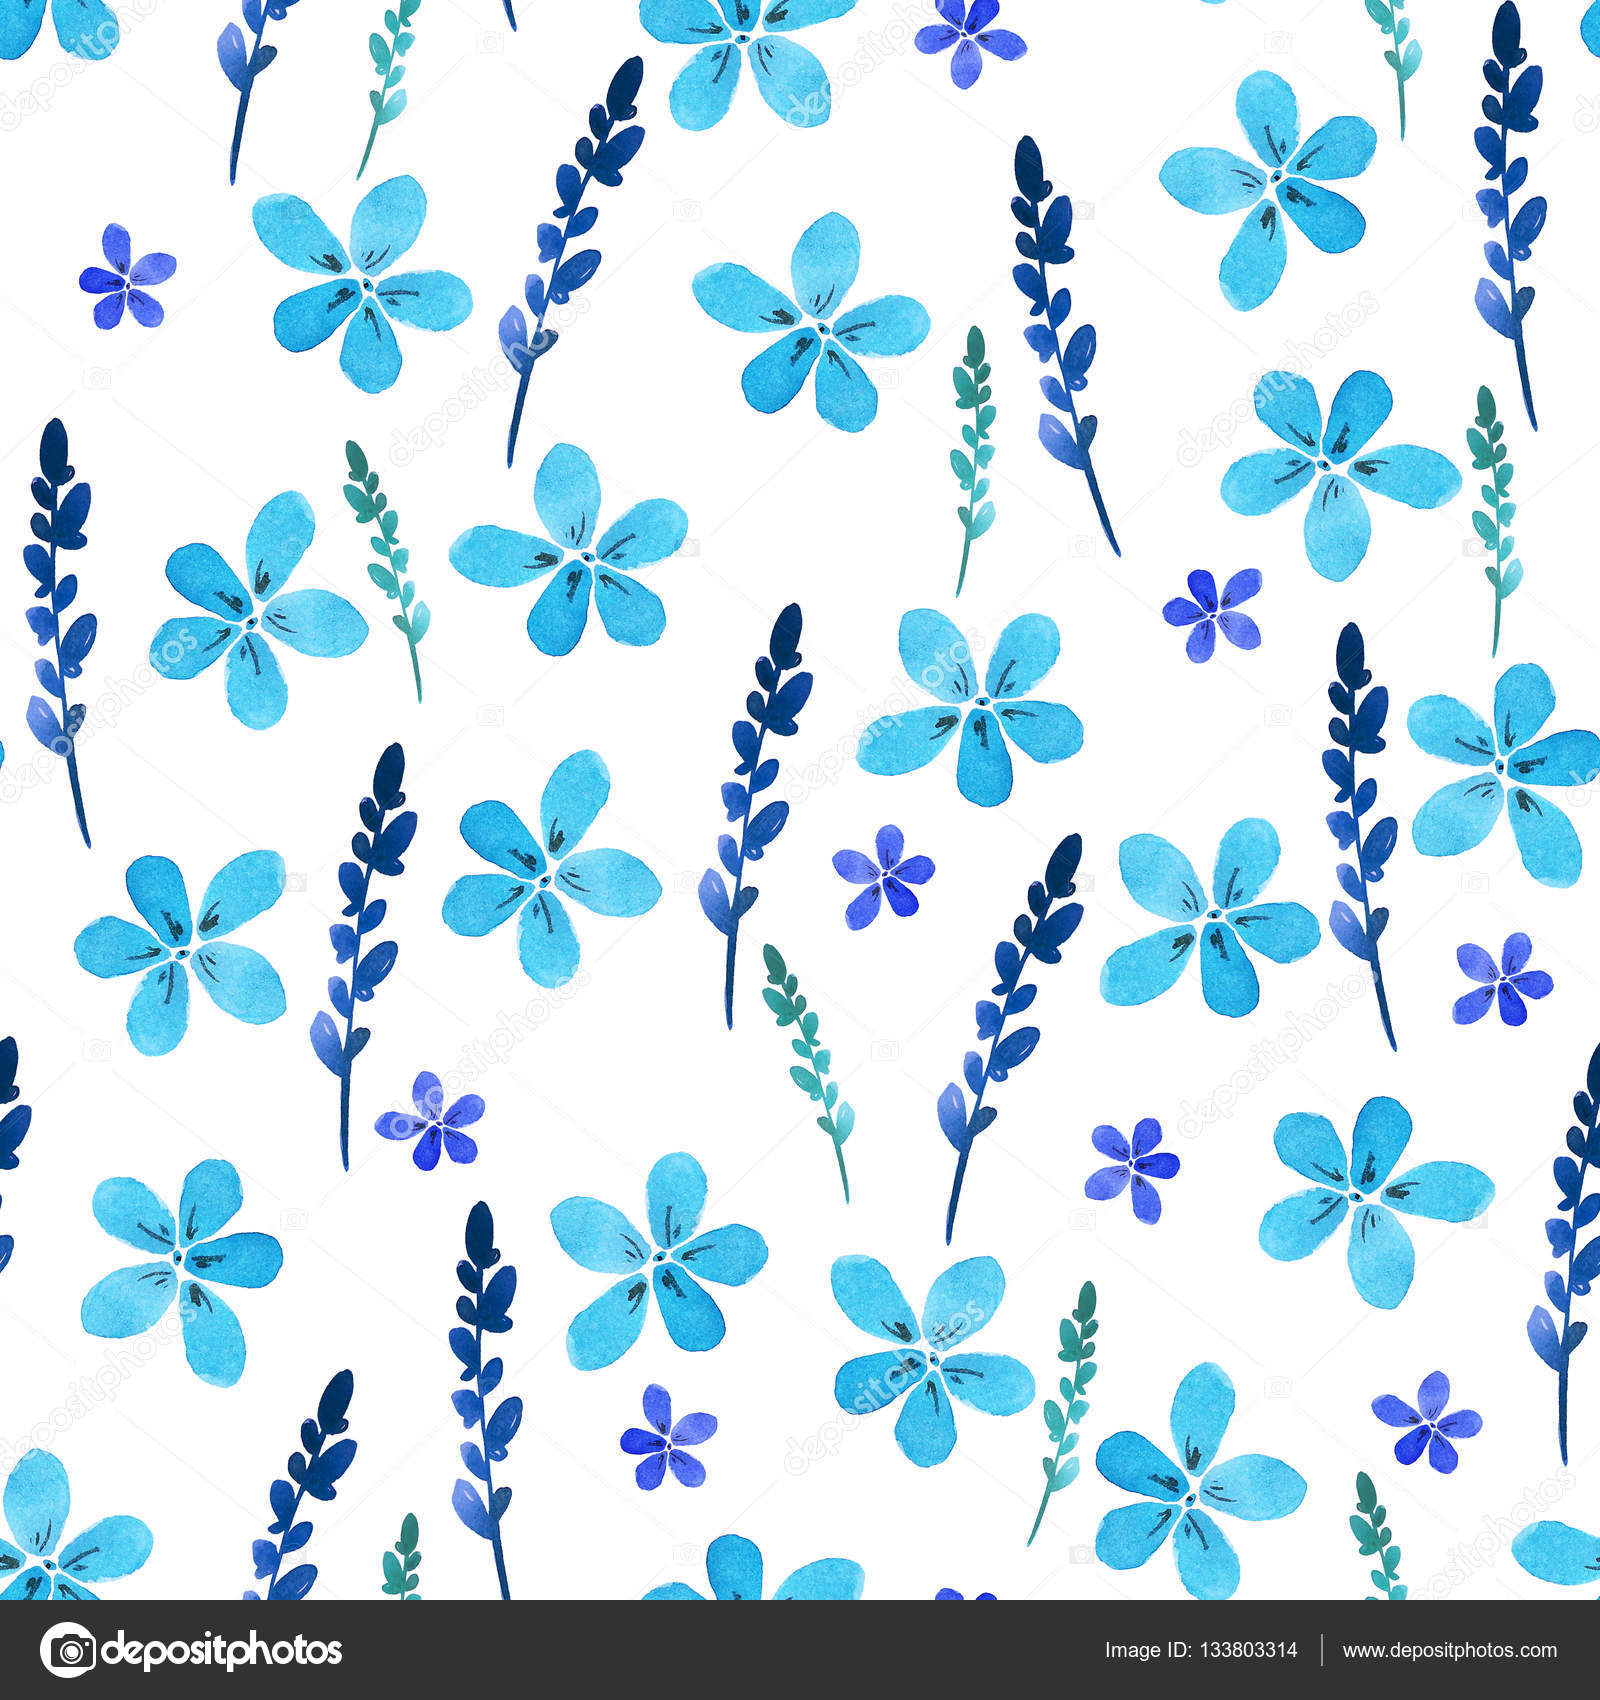 Seamless Floral Pattern With Watercolor Blue Flowers And Leaves In Vintage Style Hand Made Ornate For Textile Fabric Wallpaper Print